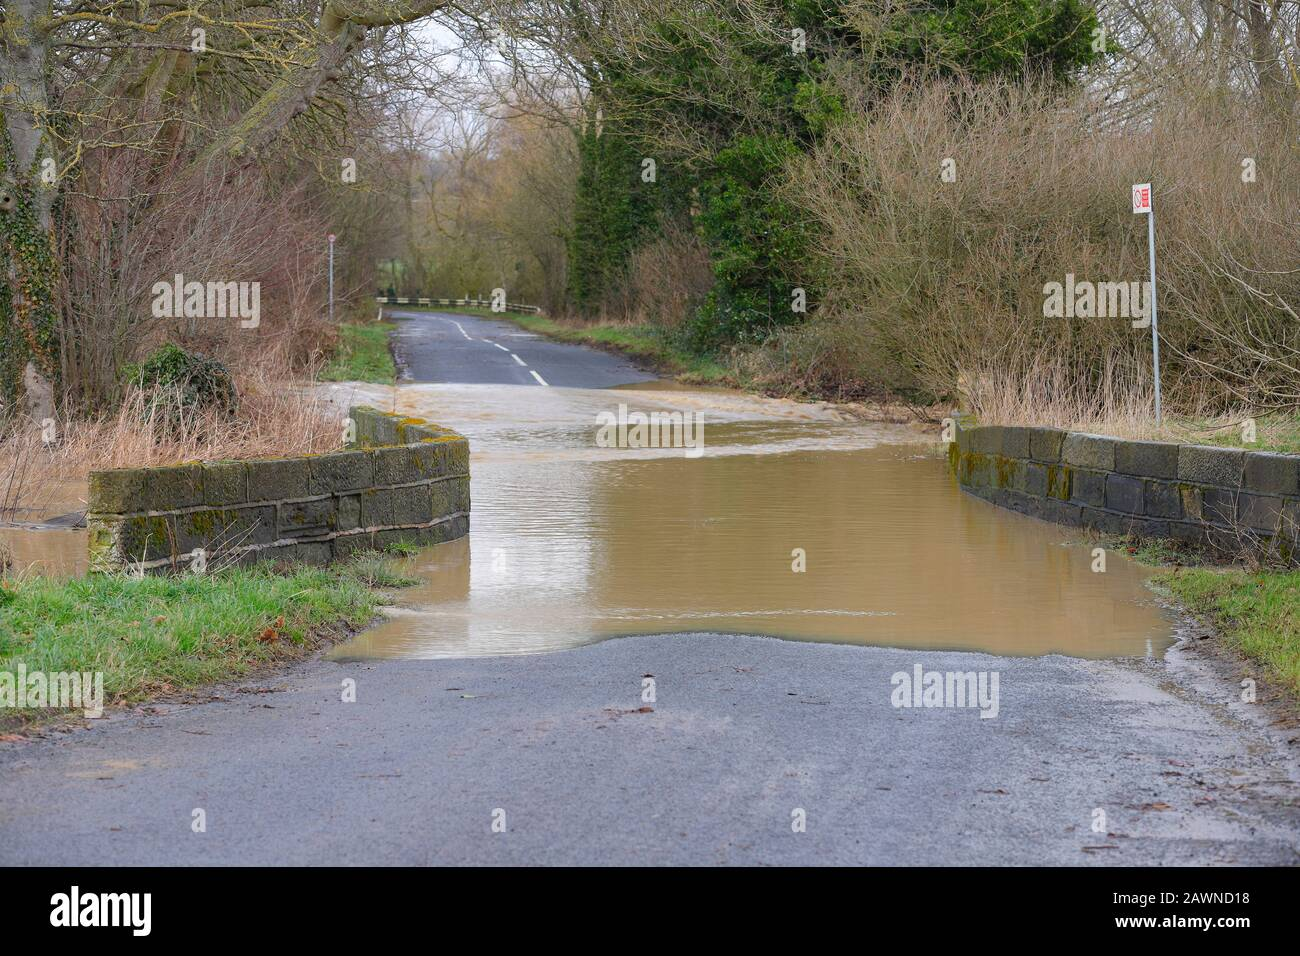 Flooding on Ledston Mill Lane in Ledston, West Yorkshire, after Storm Ciara brought flash flooding throughout the UK. Stock Photo